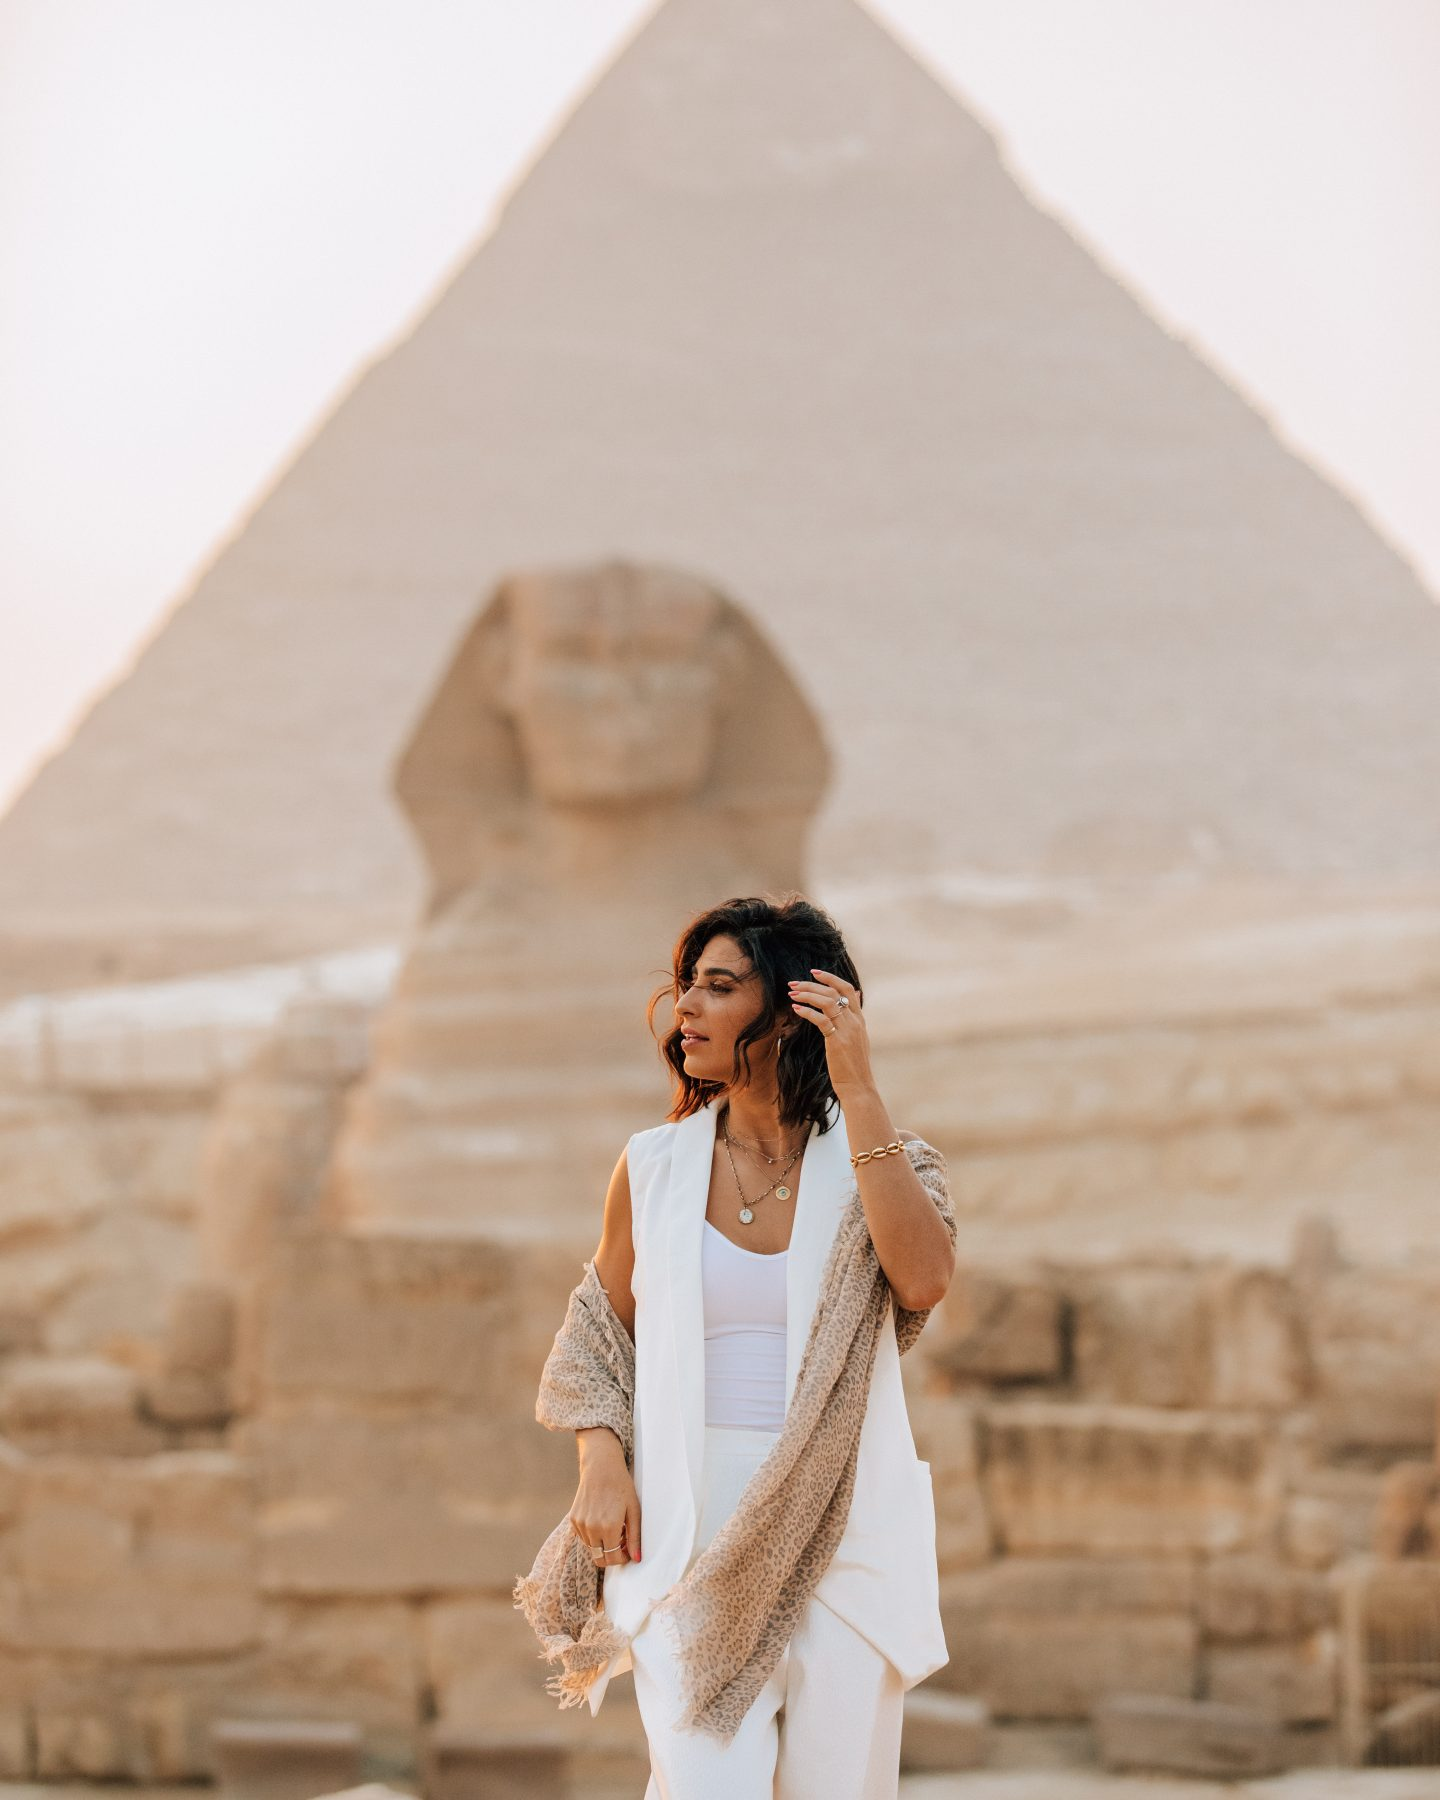 A woman in front of the Great Sphinx and Great Pyramids of Giza in Egypt